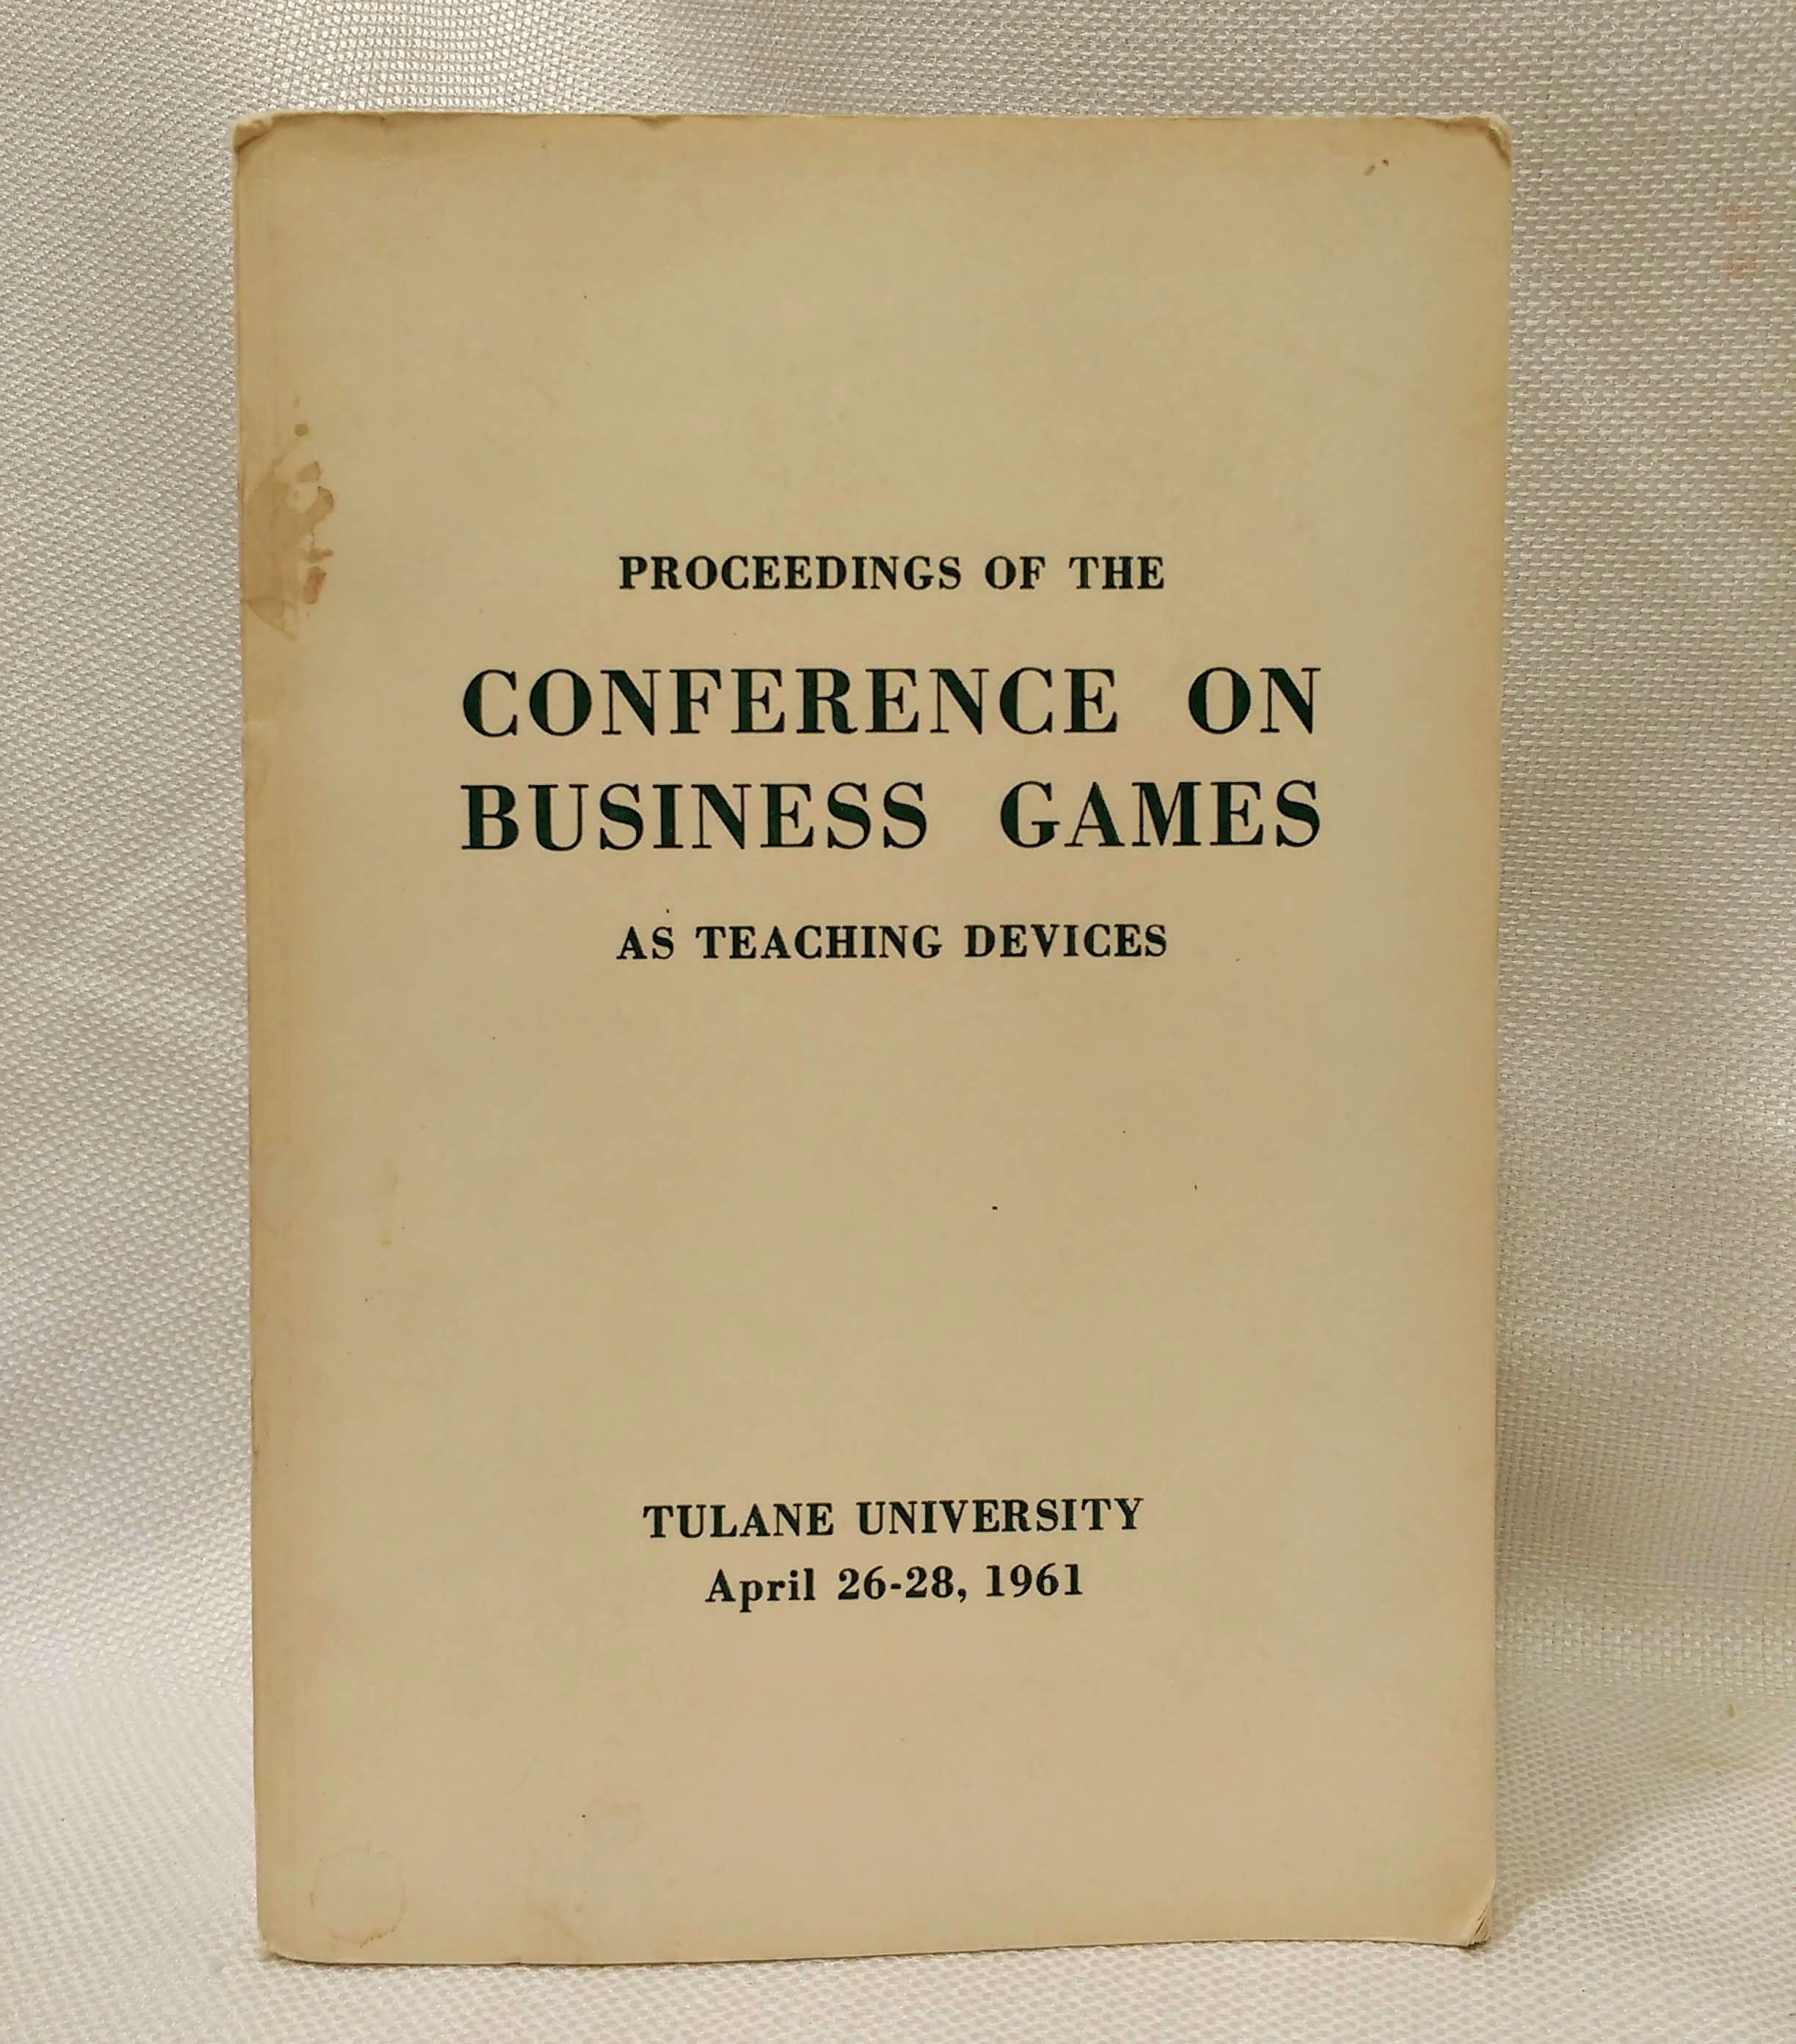 Proceedings of the Conference on Business Games as Teaching Devices (Tulane University, April 26-28, 1961), Dill, William R. [Editor]; Jackson, James R. [Editor]; Sweeney, James W. [Editor]